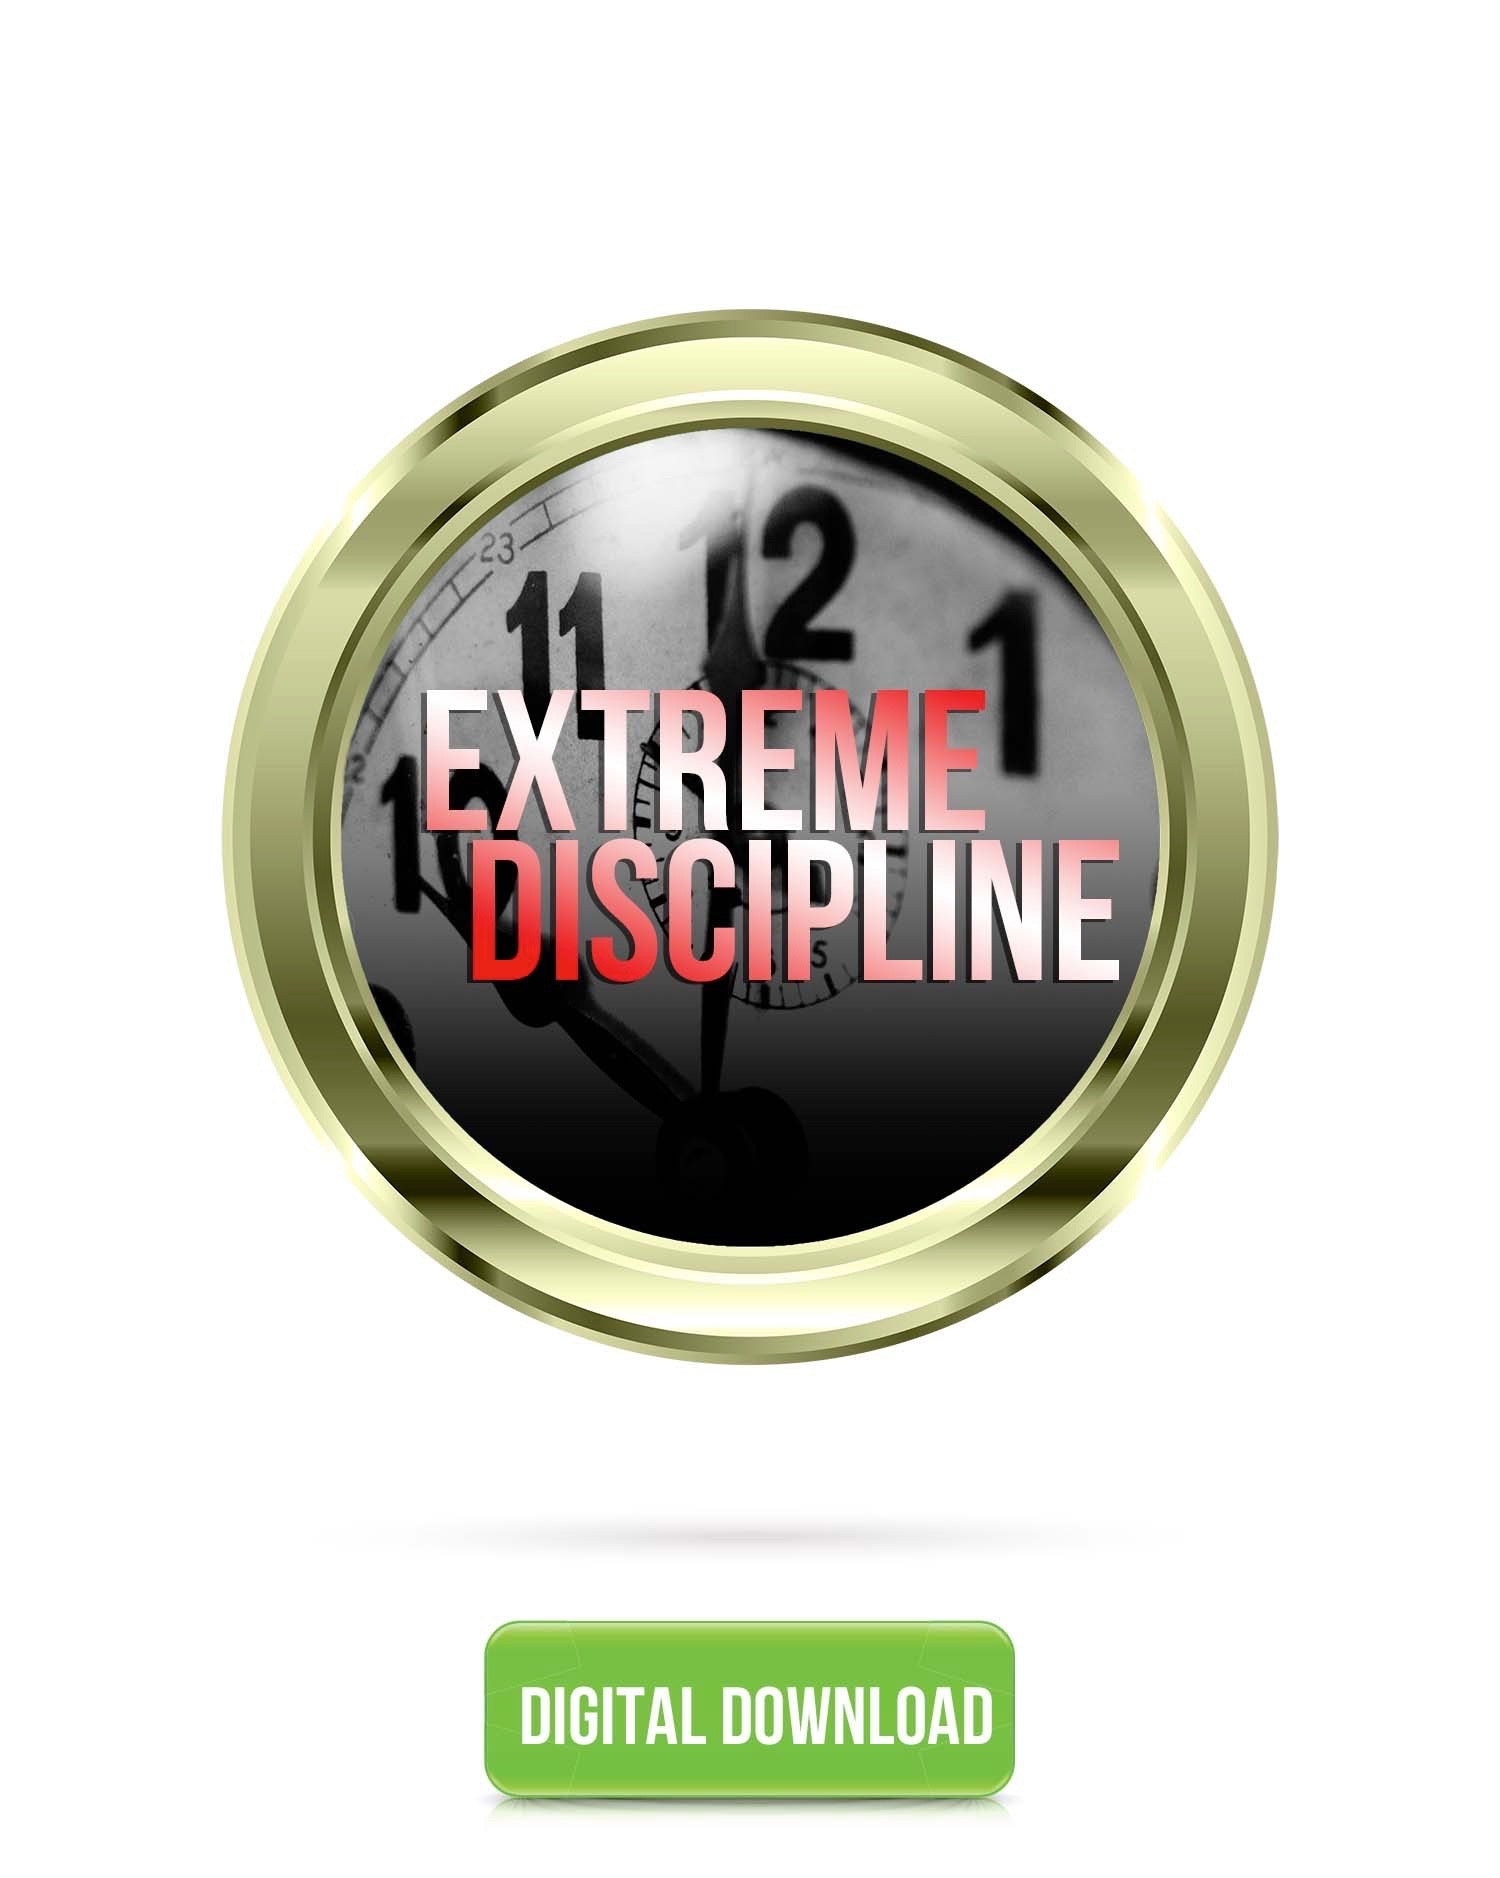 Extreme Discipline V3.1 | Delay Gratification & Accomplish Your Goals